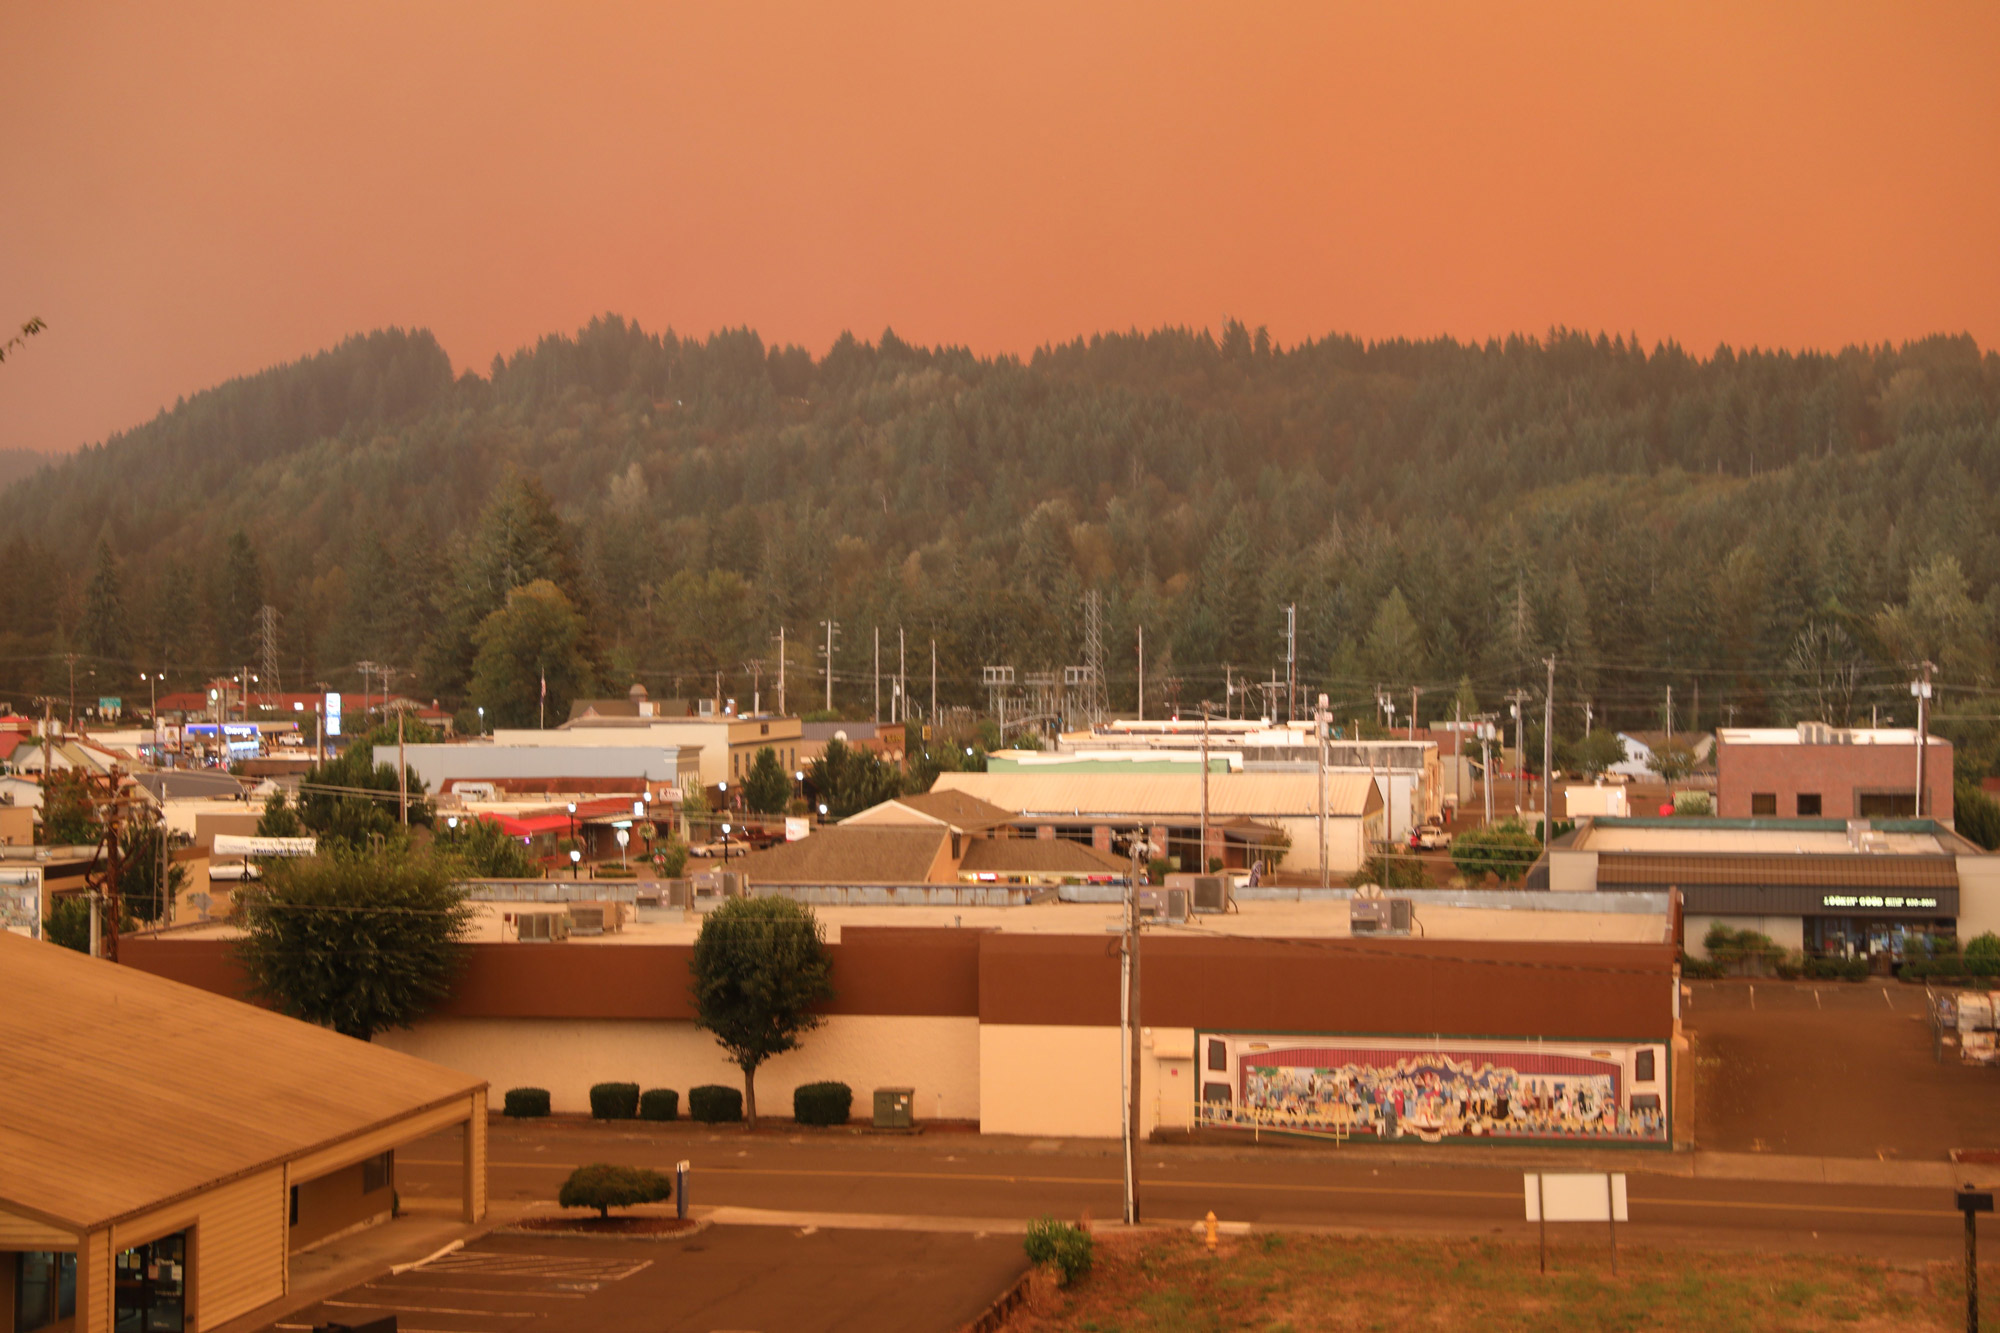 The city of Estacada, Oregon, is seen on September 9.